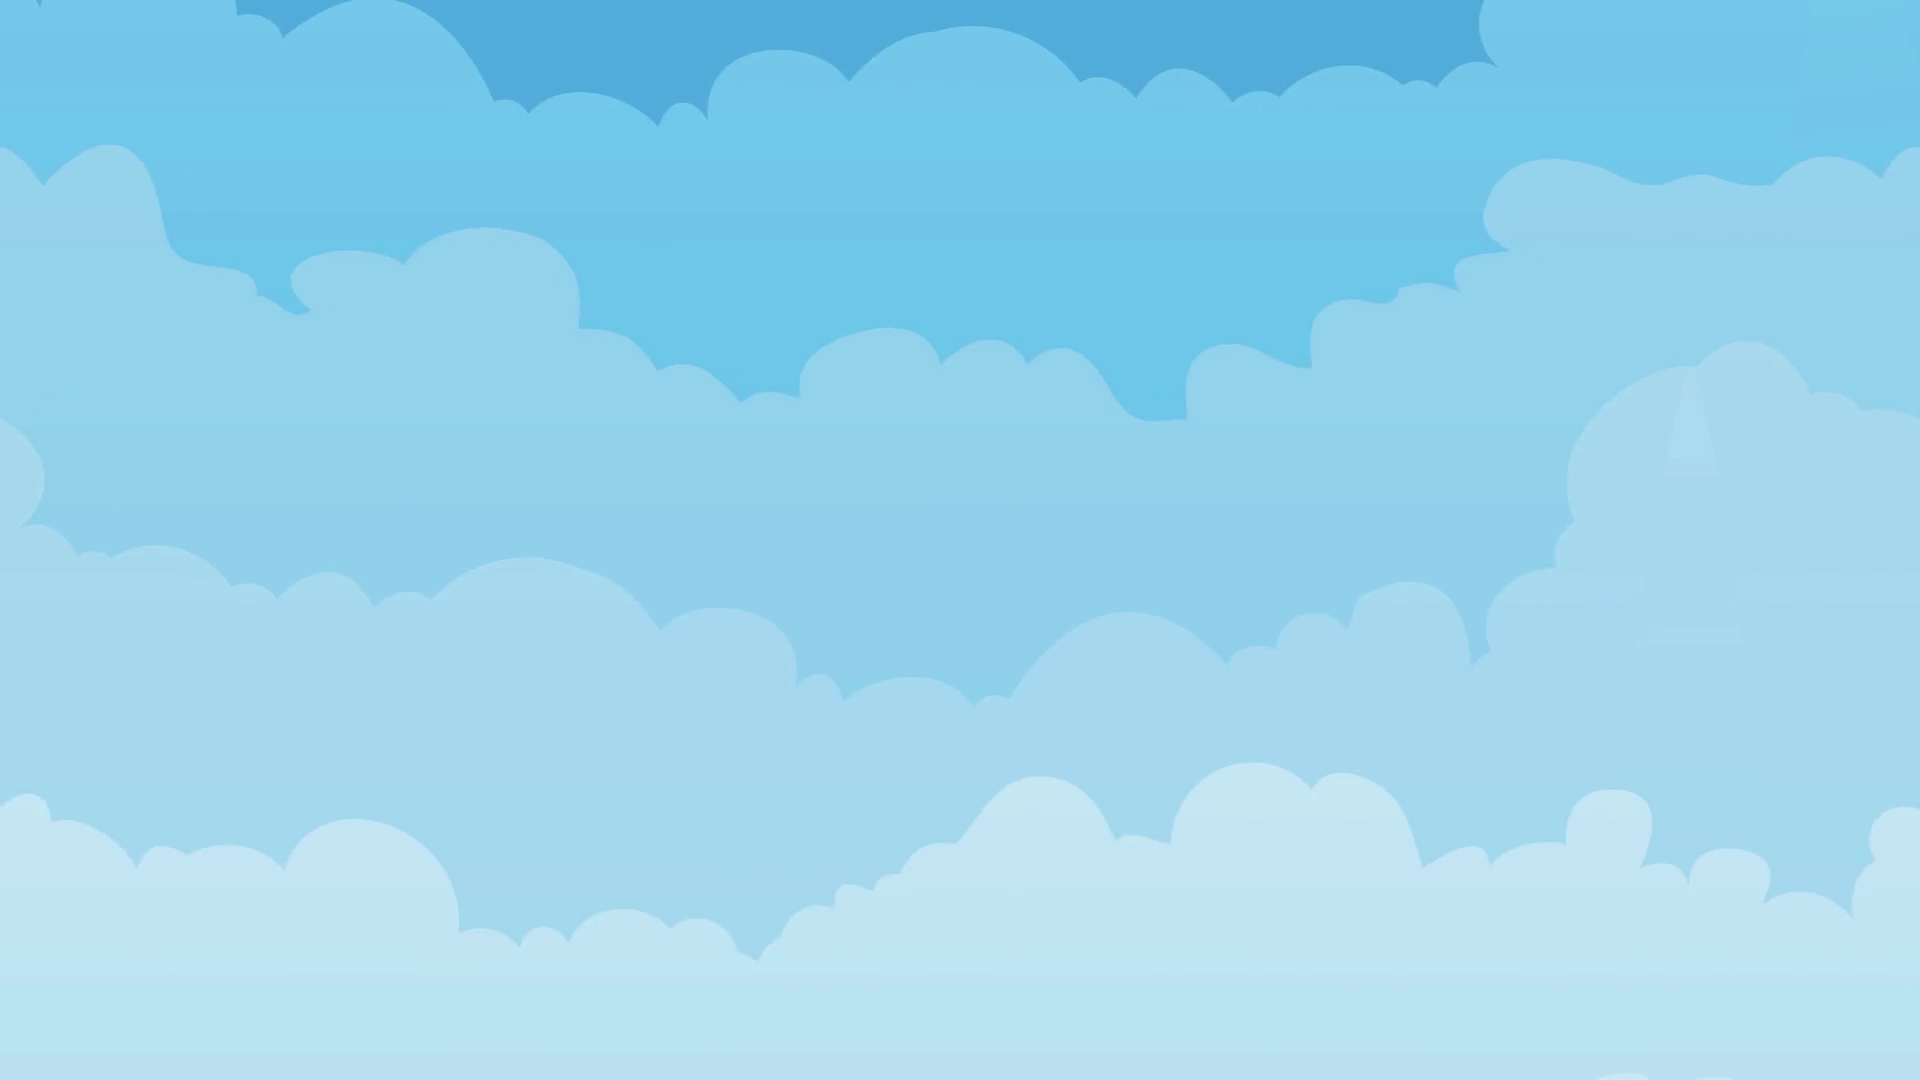 Sky Background With Clouds Seamless Looping/ Animation of a cartoon spring  or summer blue sky backdrop with clouds layers moving to the left Motion.